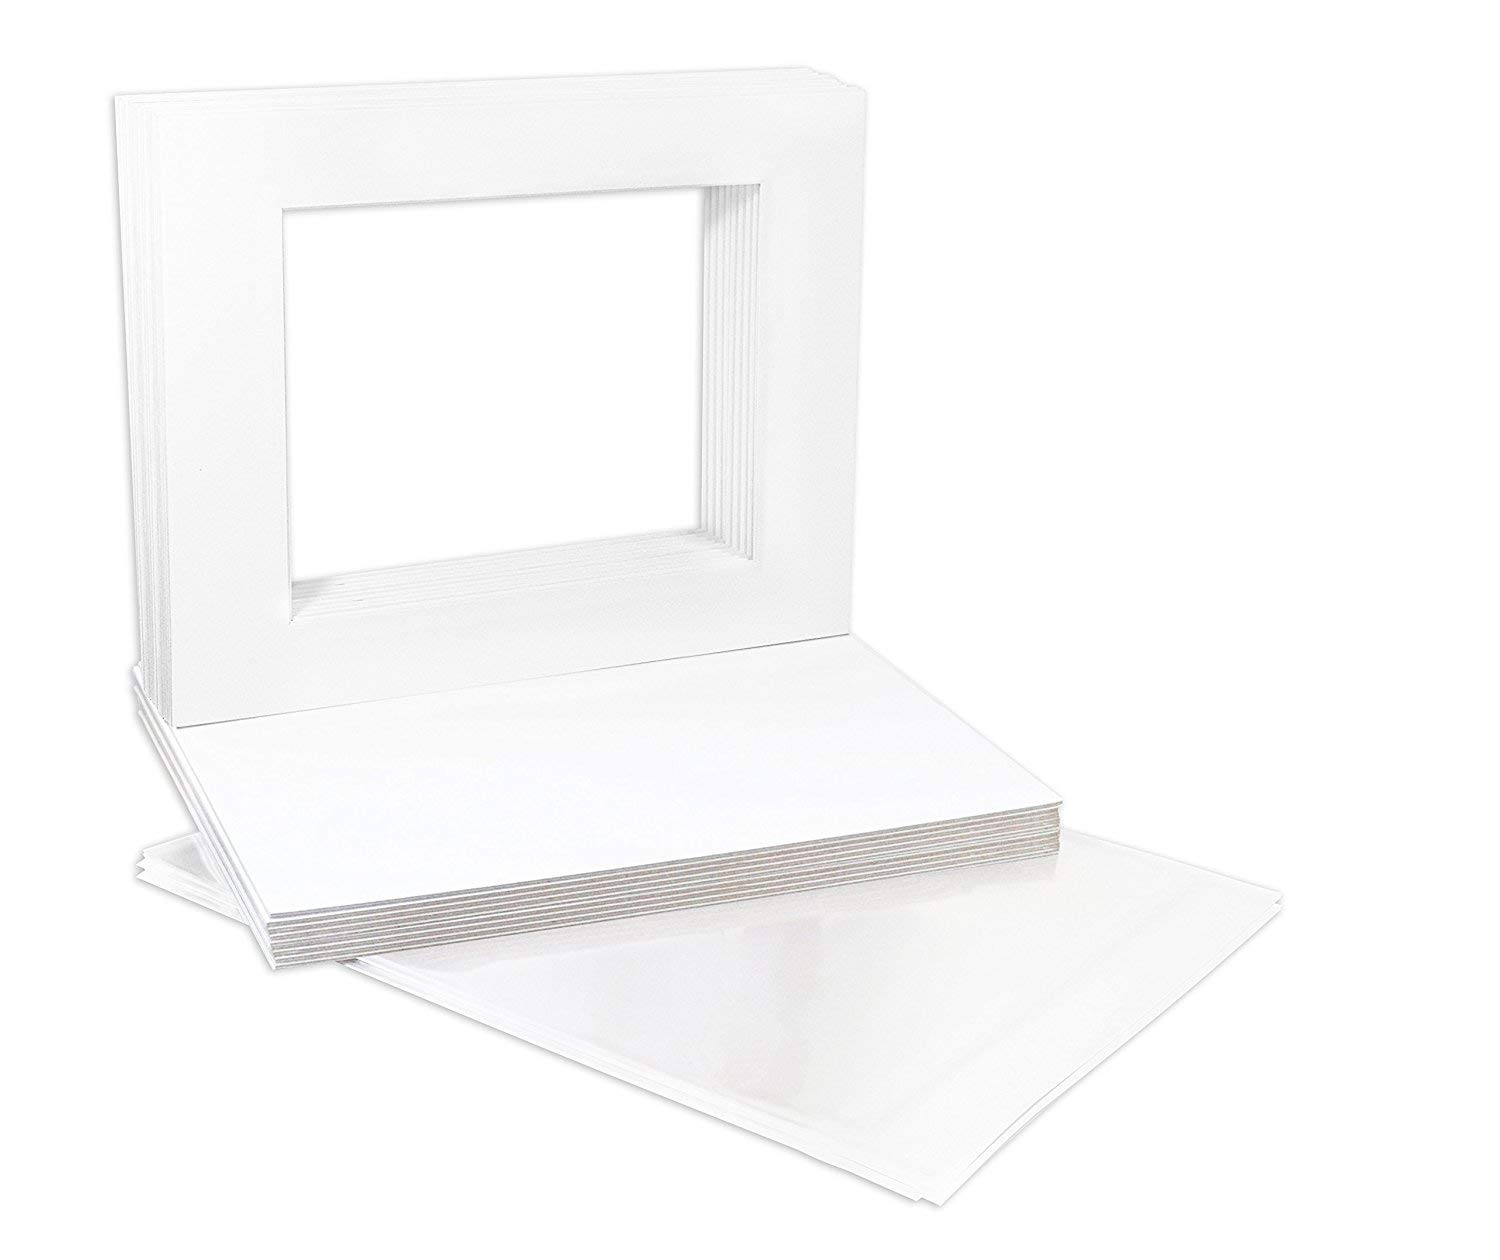 Studio 500, USA A1 BRAND, Acid-Free Pre-Cut 11x14 Ivory Picture Mat Sets; Pack of 25 Ivory Core Bevel Cut Mattes for 8x10 Photos, Pack of 25 Backers & Pack of 25 Crystal Clear Plastic Sleeves Bags